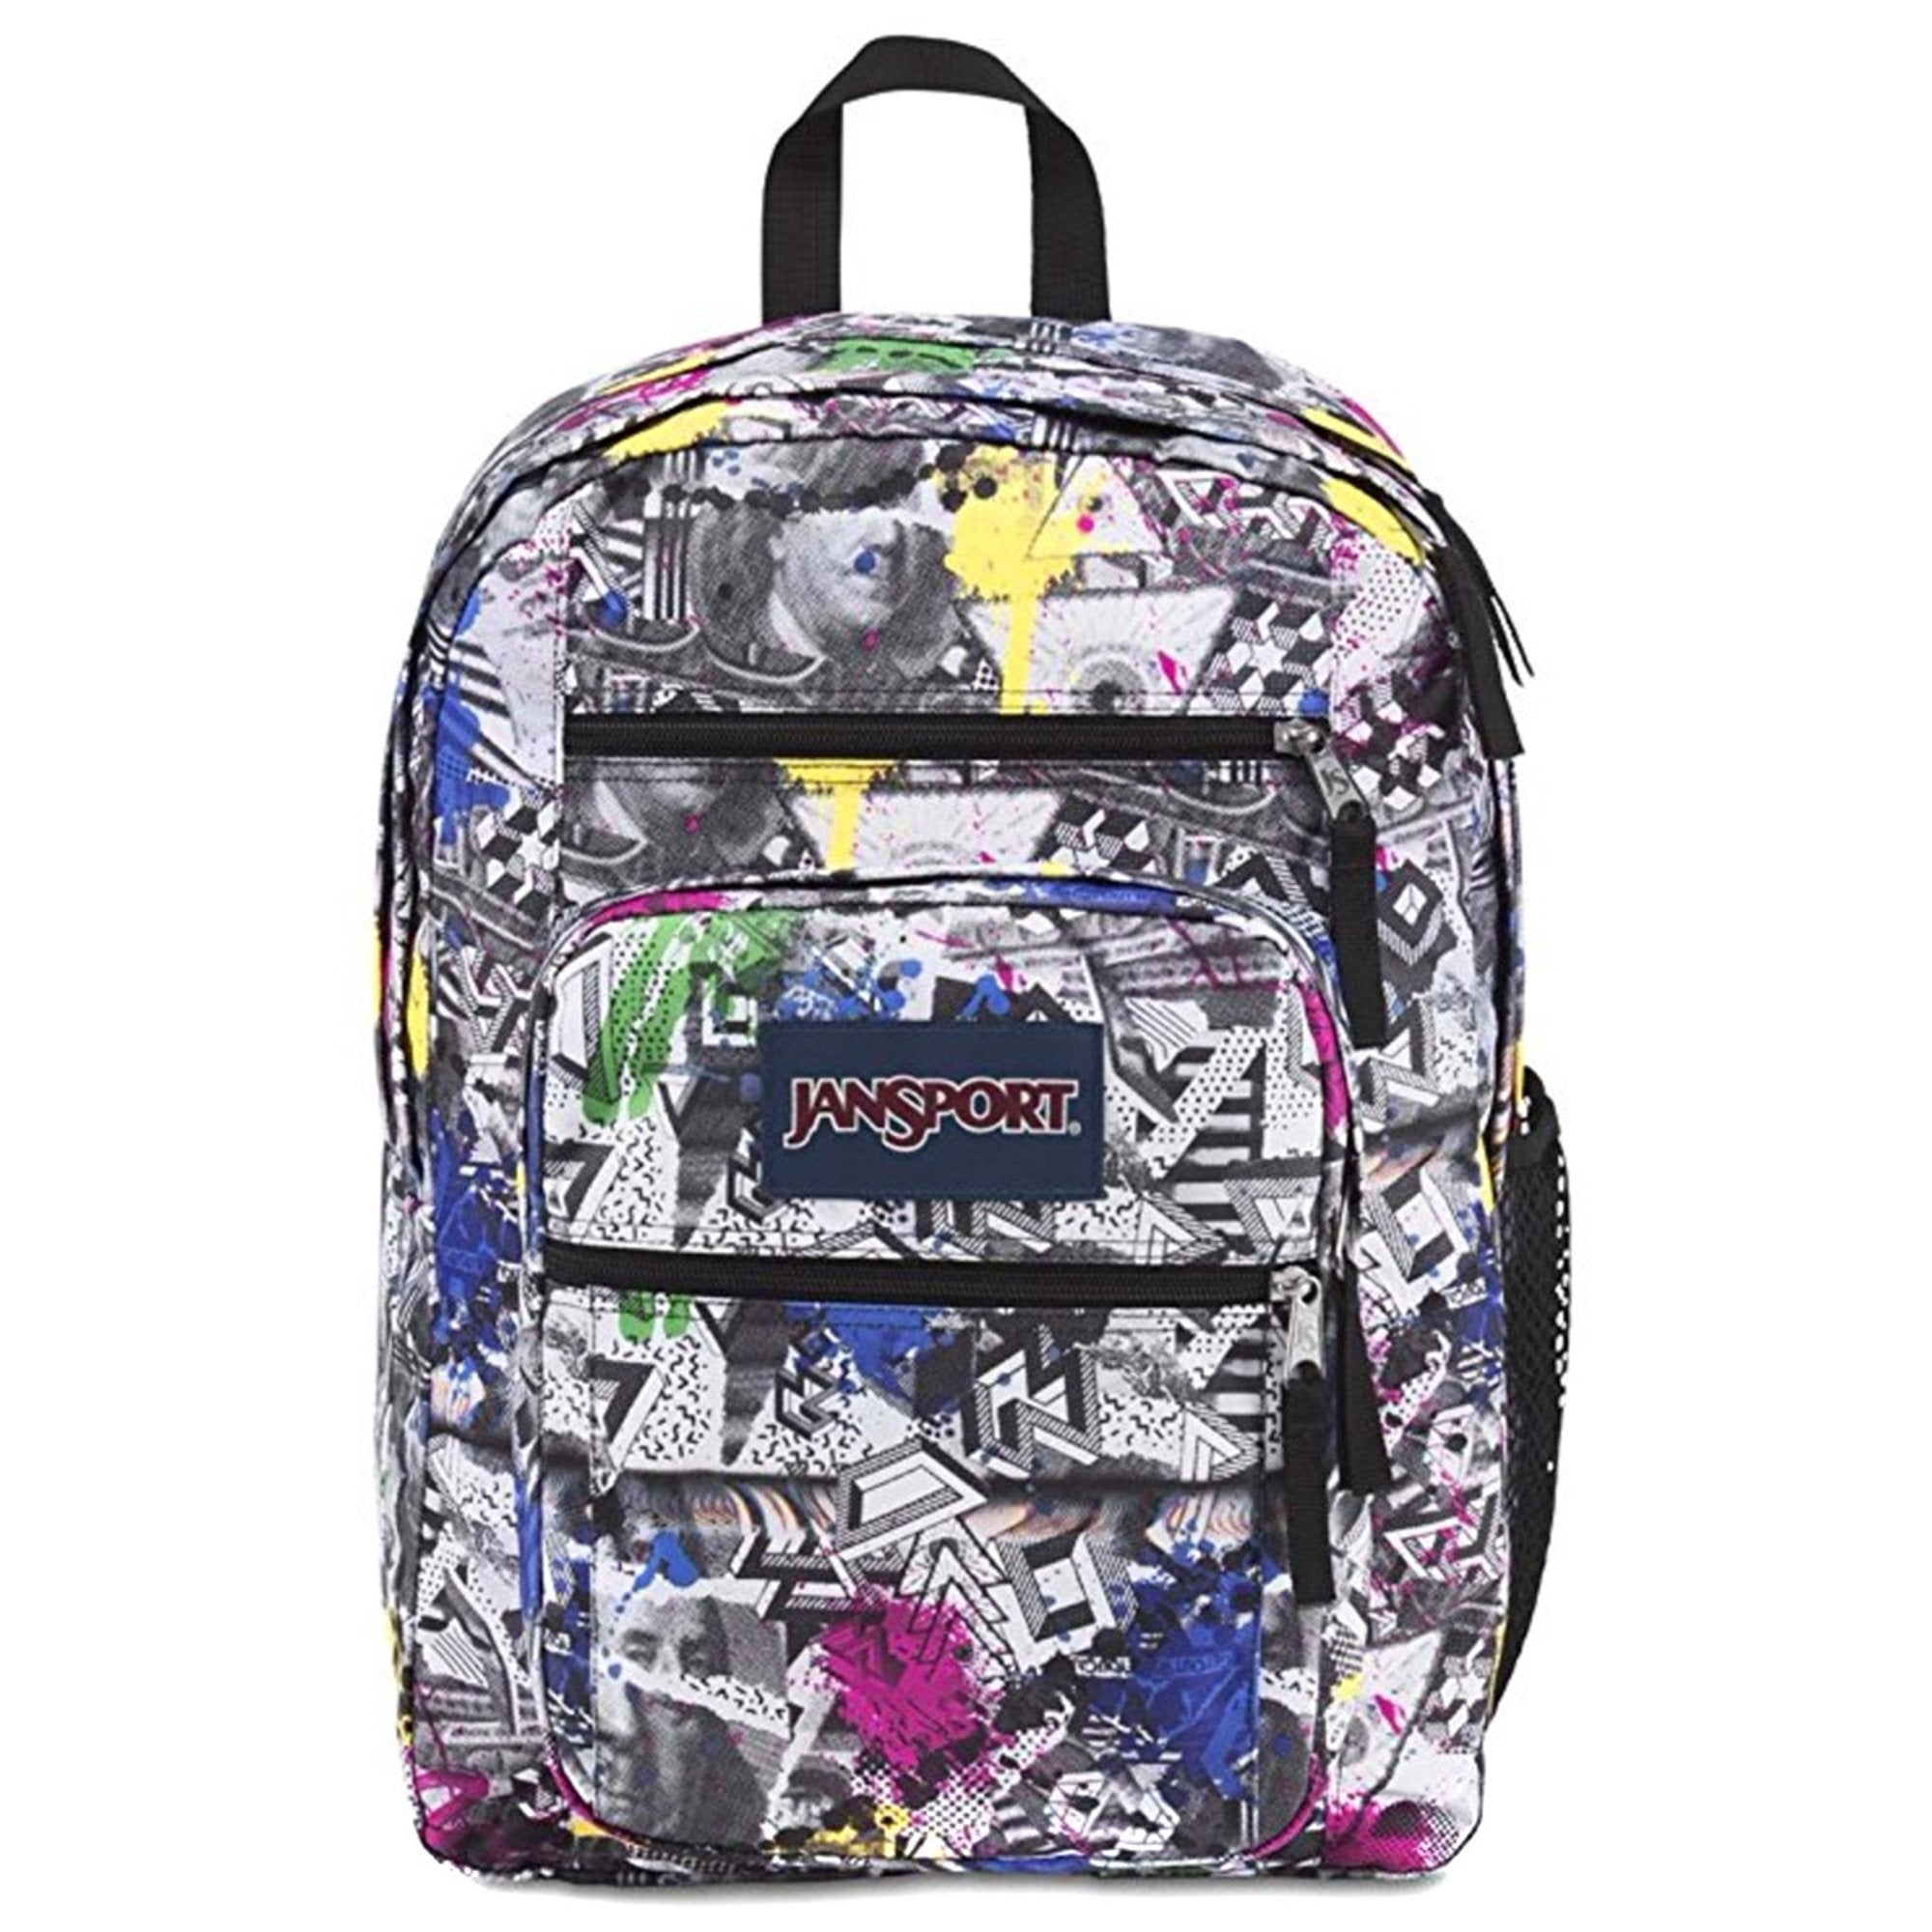 jansport bags ireland